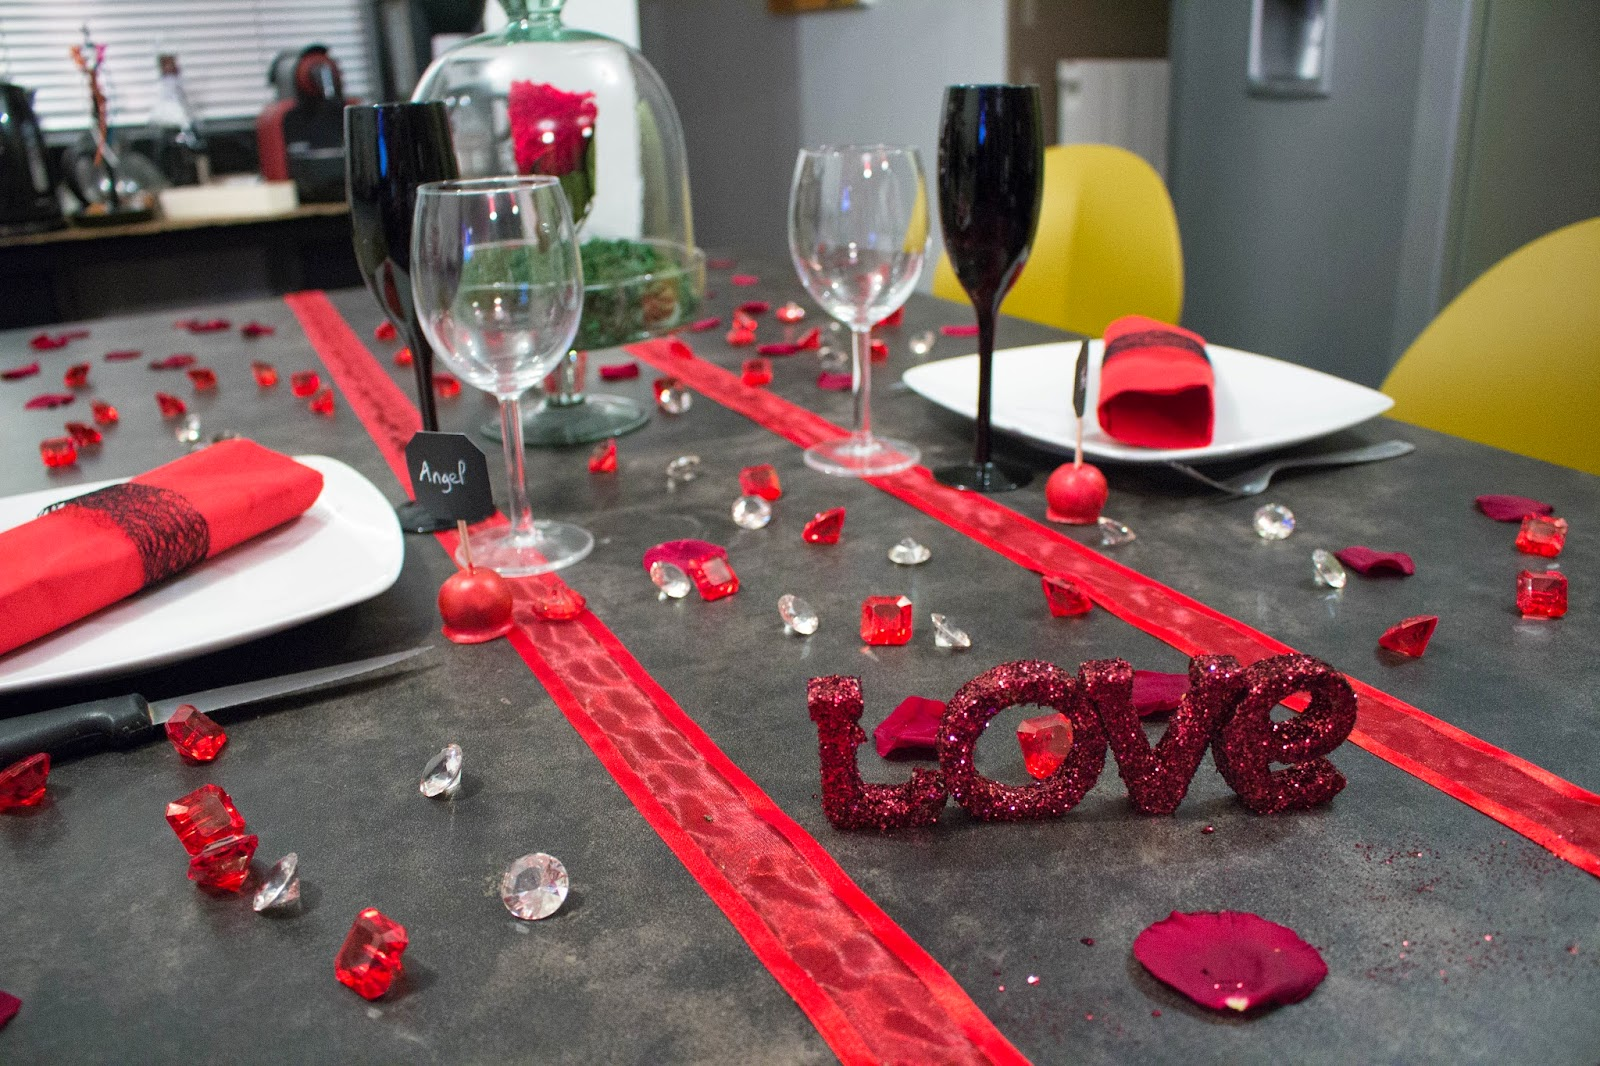 decoration table st valentin - maison design - bahbe